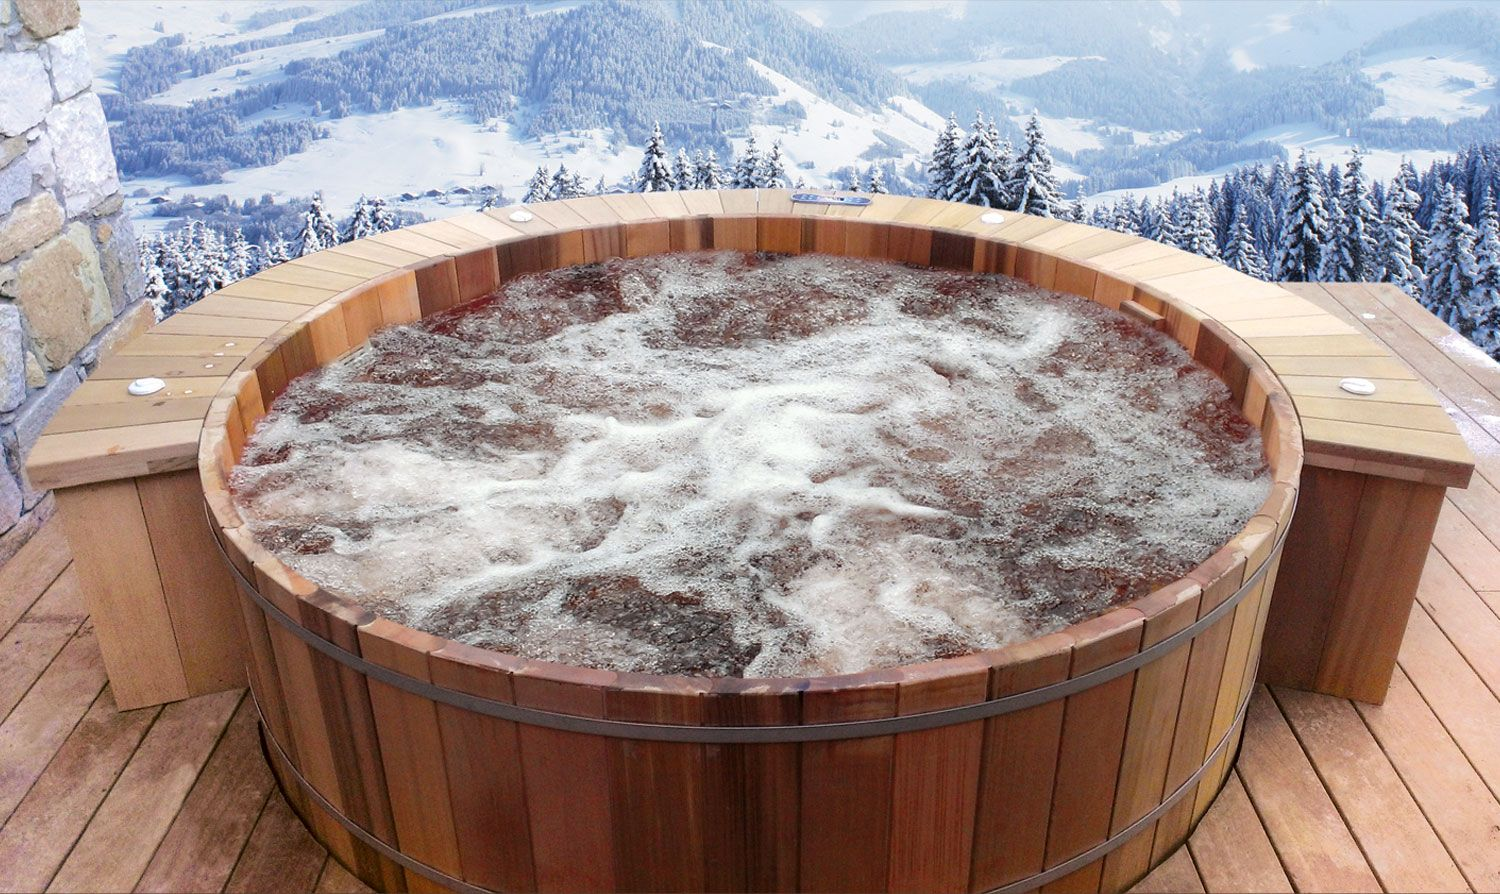 Le sp cialiste du spa jacuzzi ext rieur en red cedar for Reglementation spa exterieur